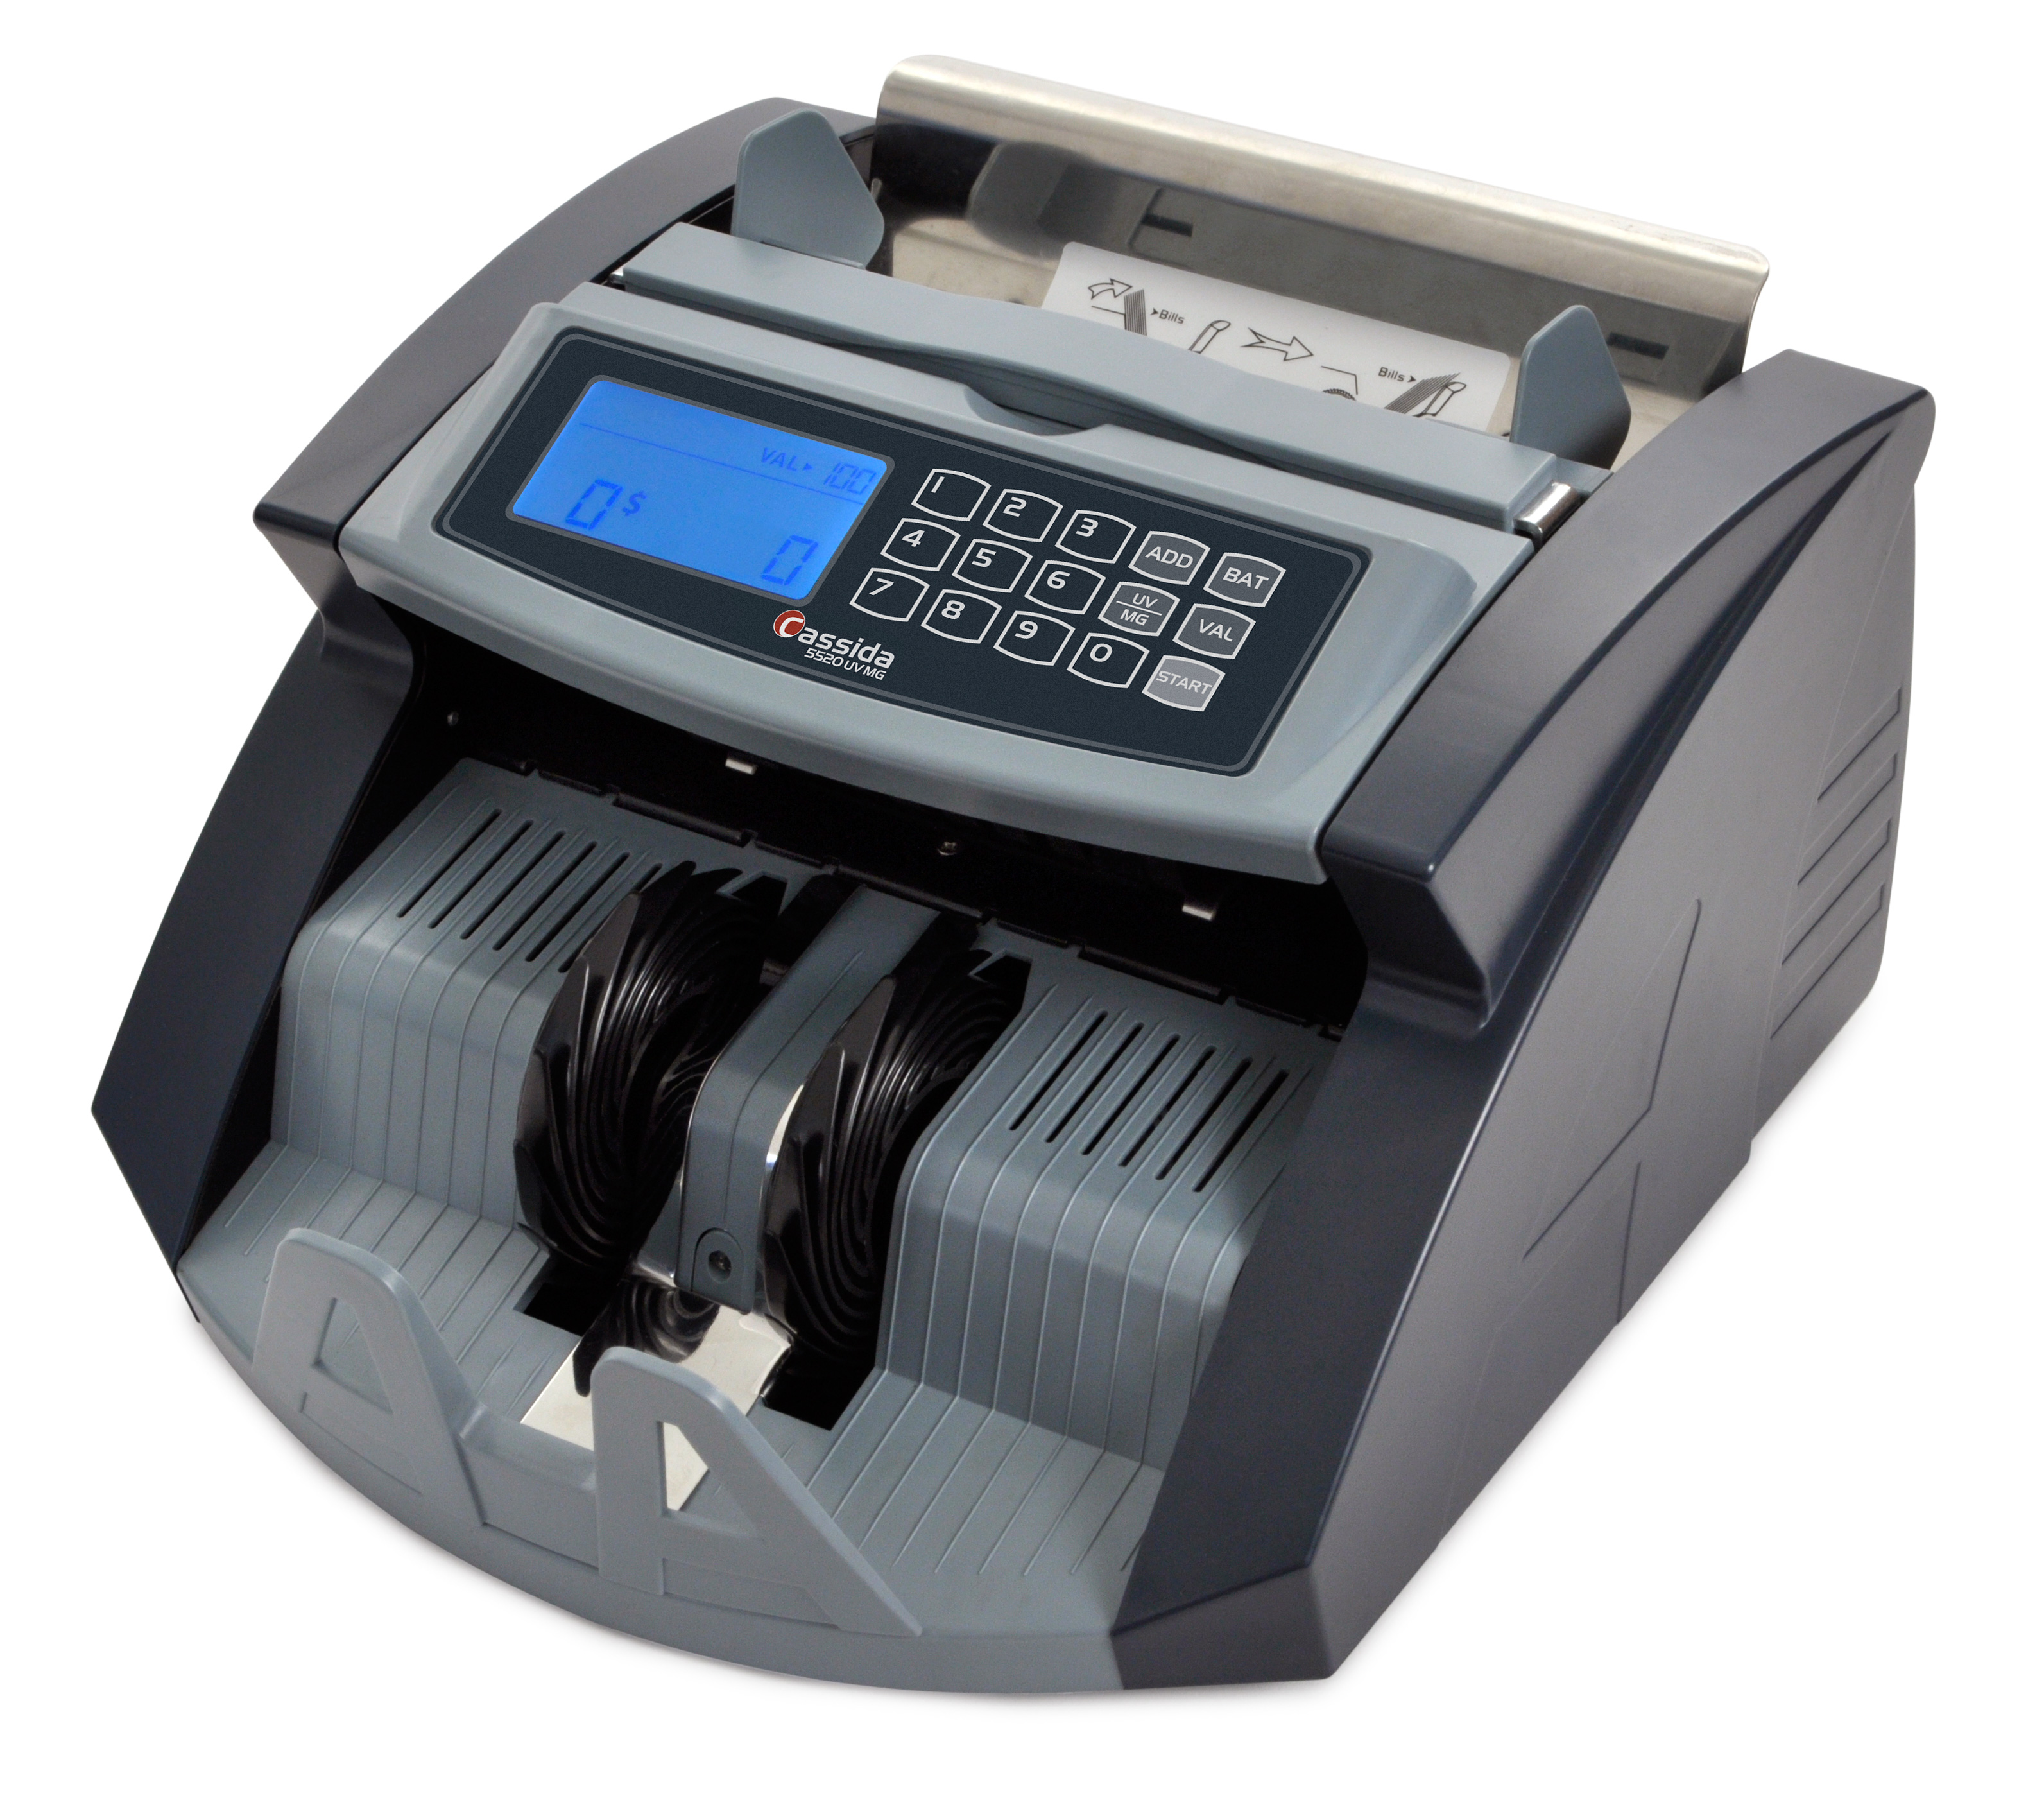 Cassida 5520 UV/MG Bill Counter with ValueCount UV and Magnetic Counterfeit Detection